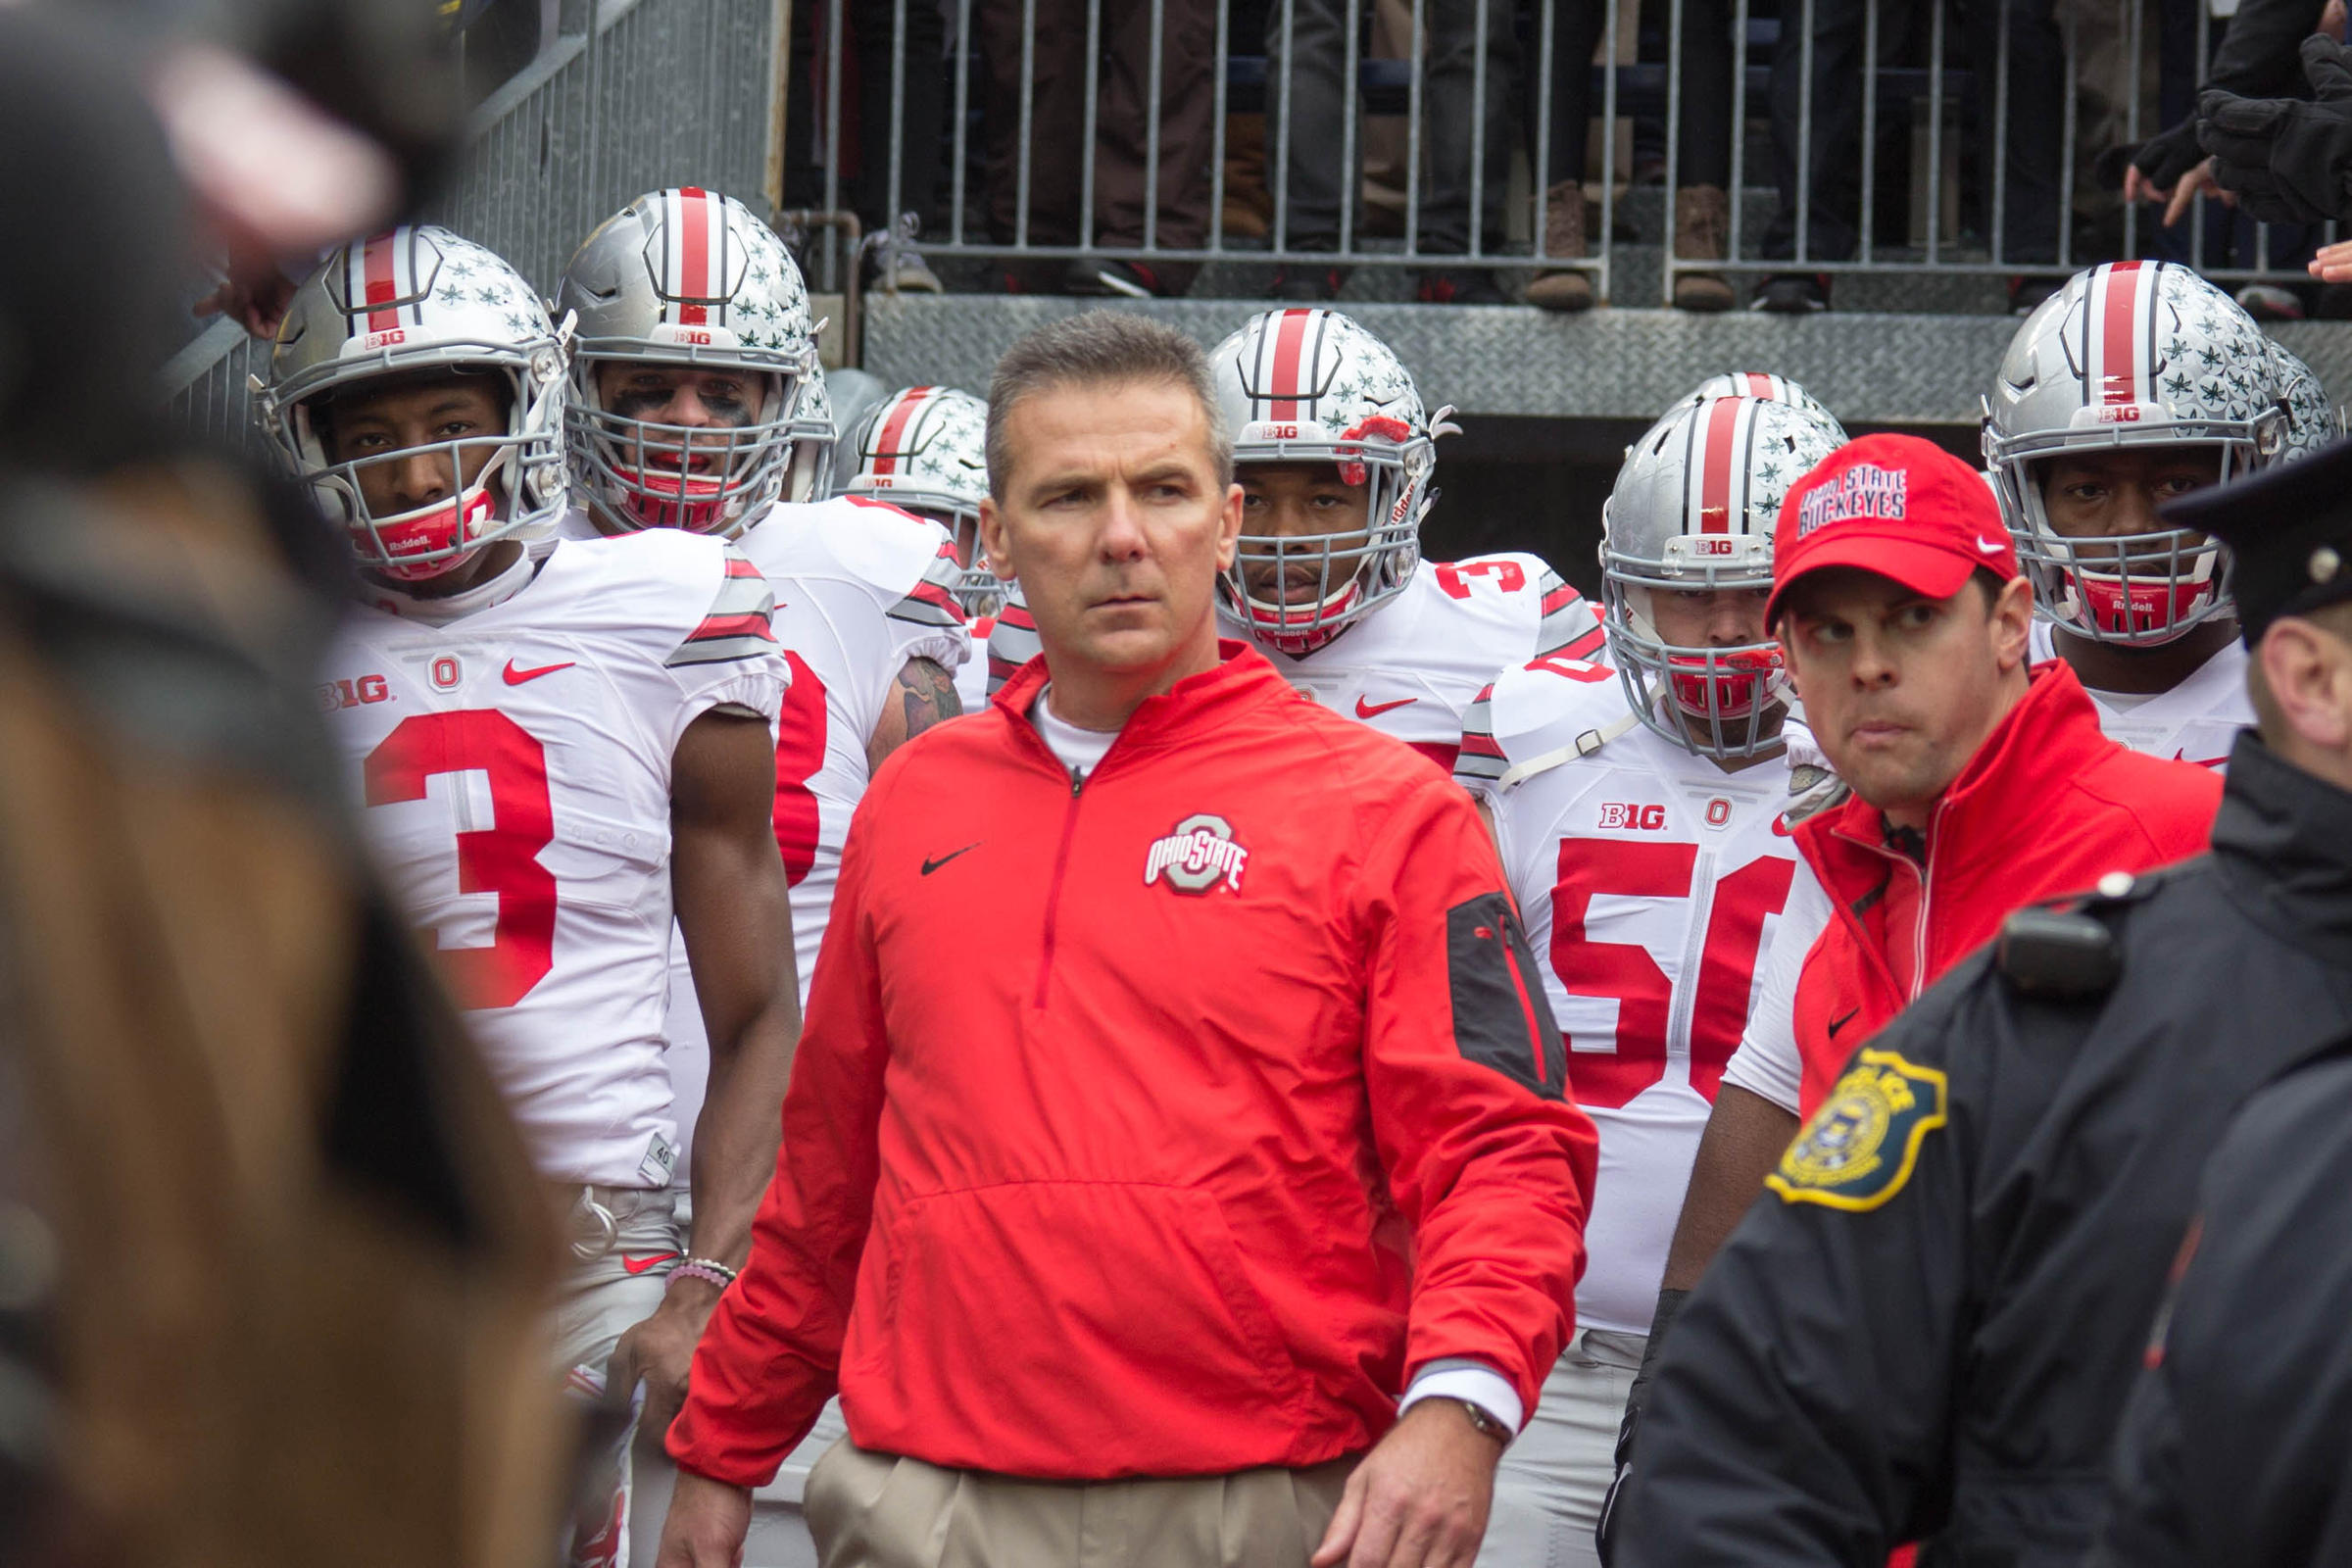 Coach Urban Meyer's alleged Title IX violation could cost